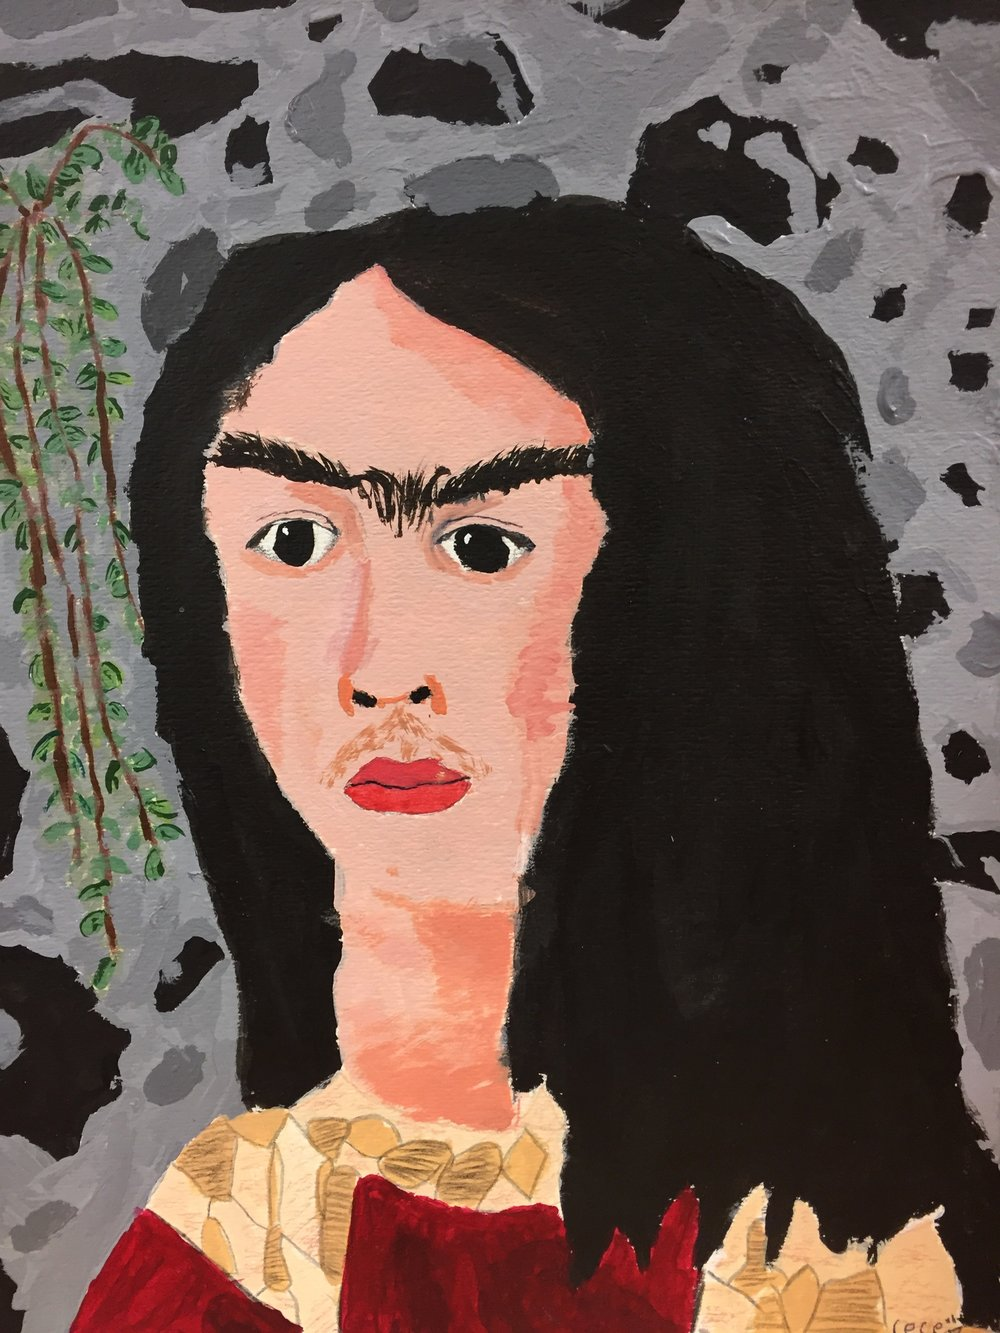 Cece, age 11 inspired by Frida Kahlo